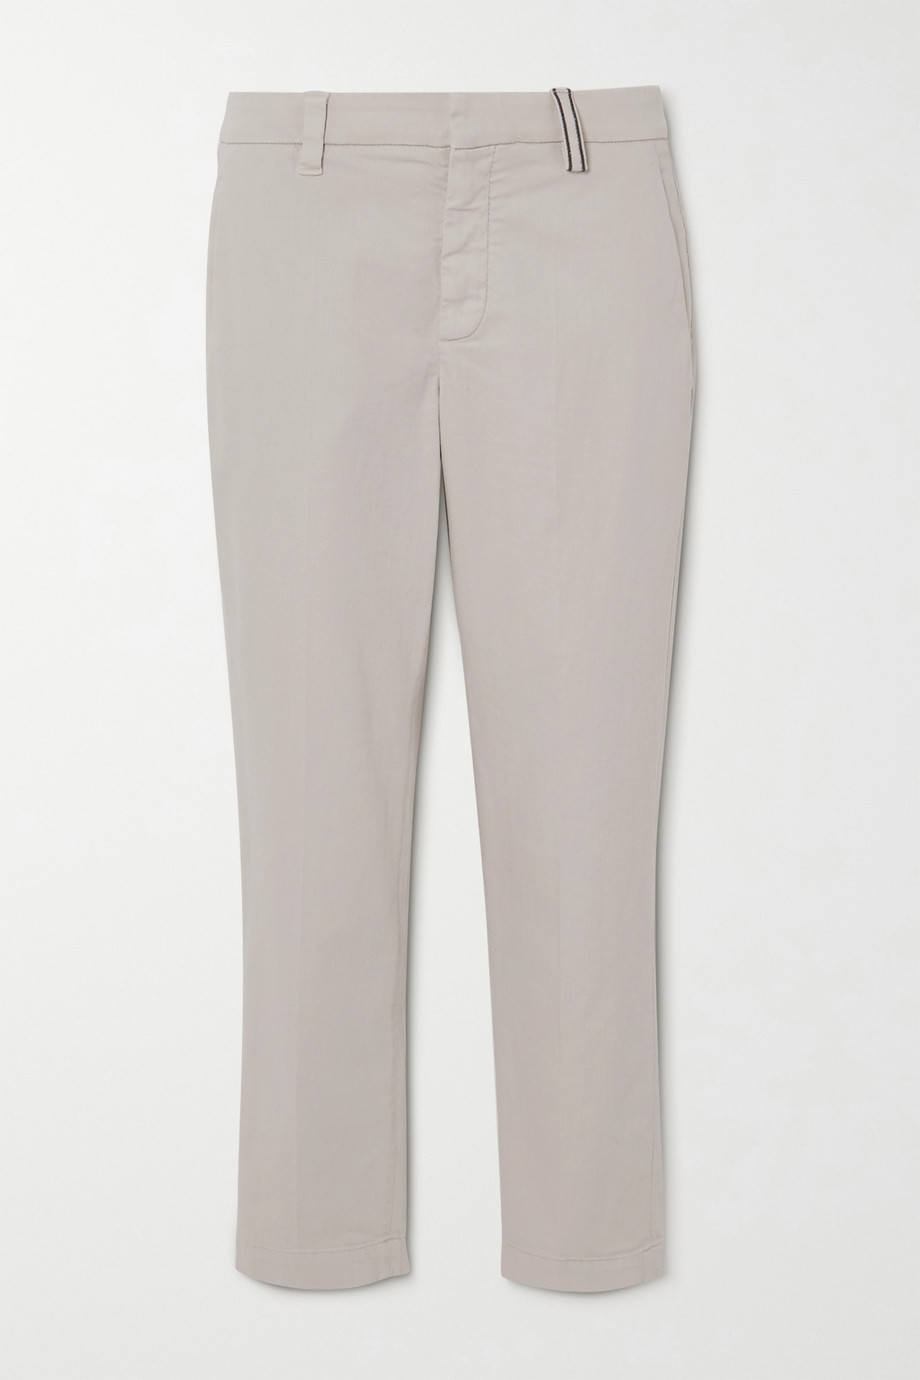 Brunello Cucinelli Bead-embellished stretch cotton and Lyocell-blend twill slim-leg pants